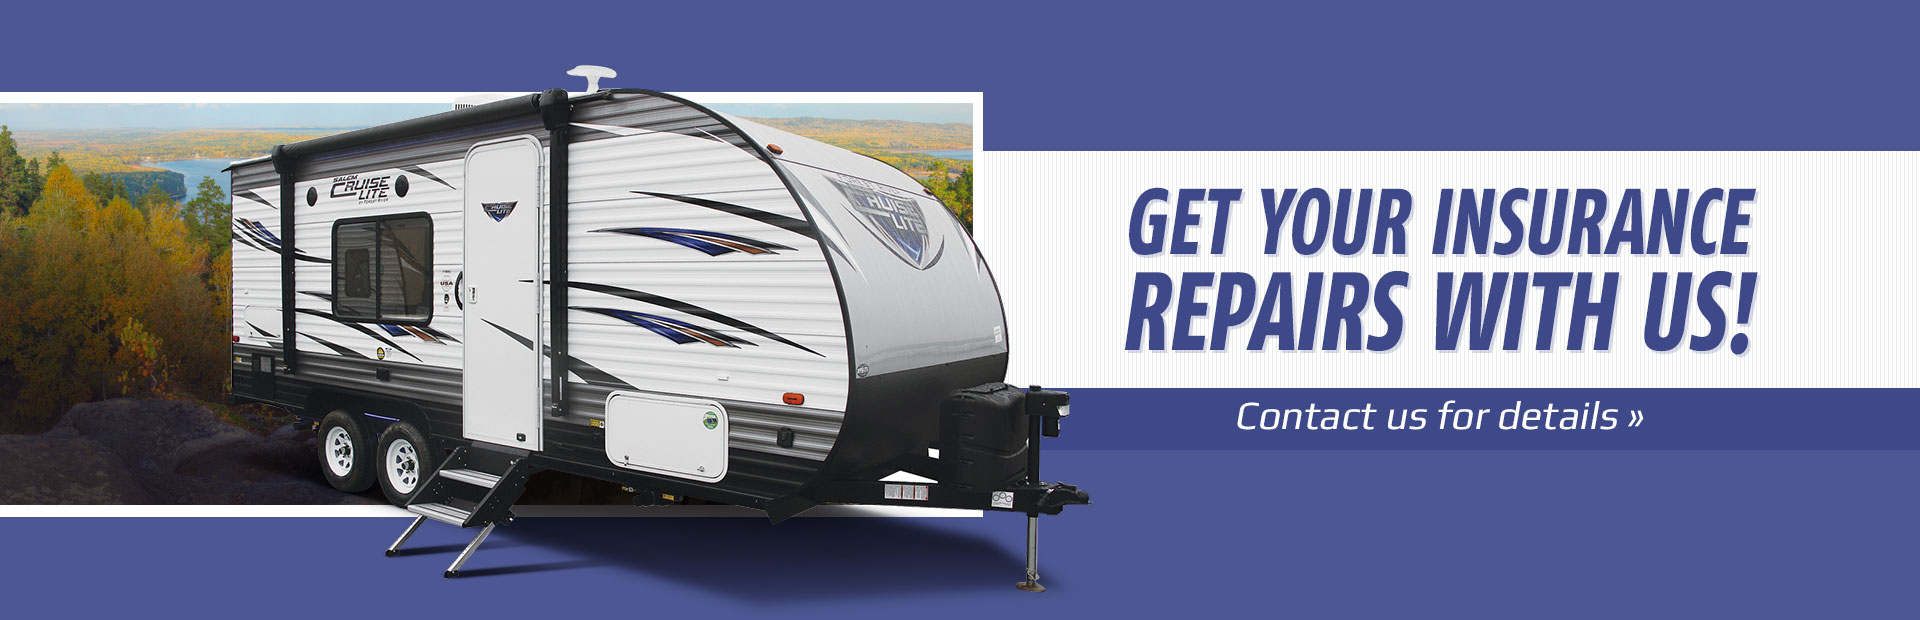 Get your insurance repairs with us! Contact us for details.